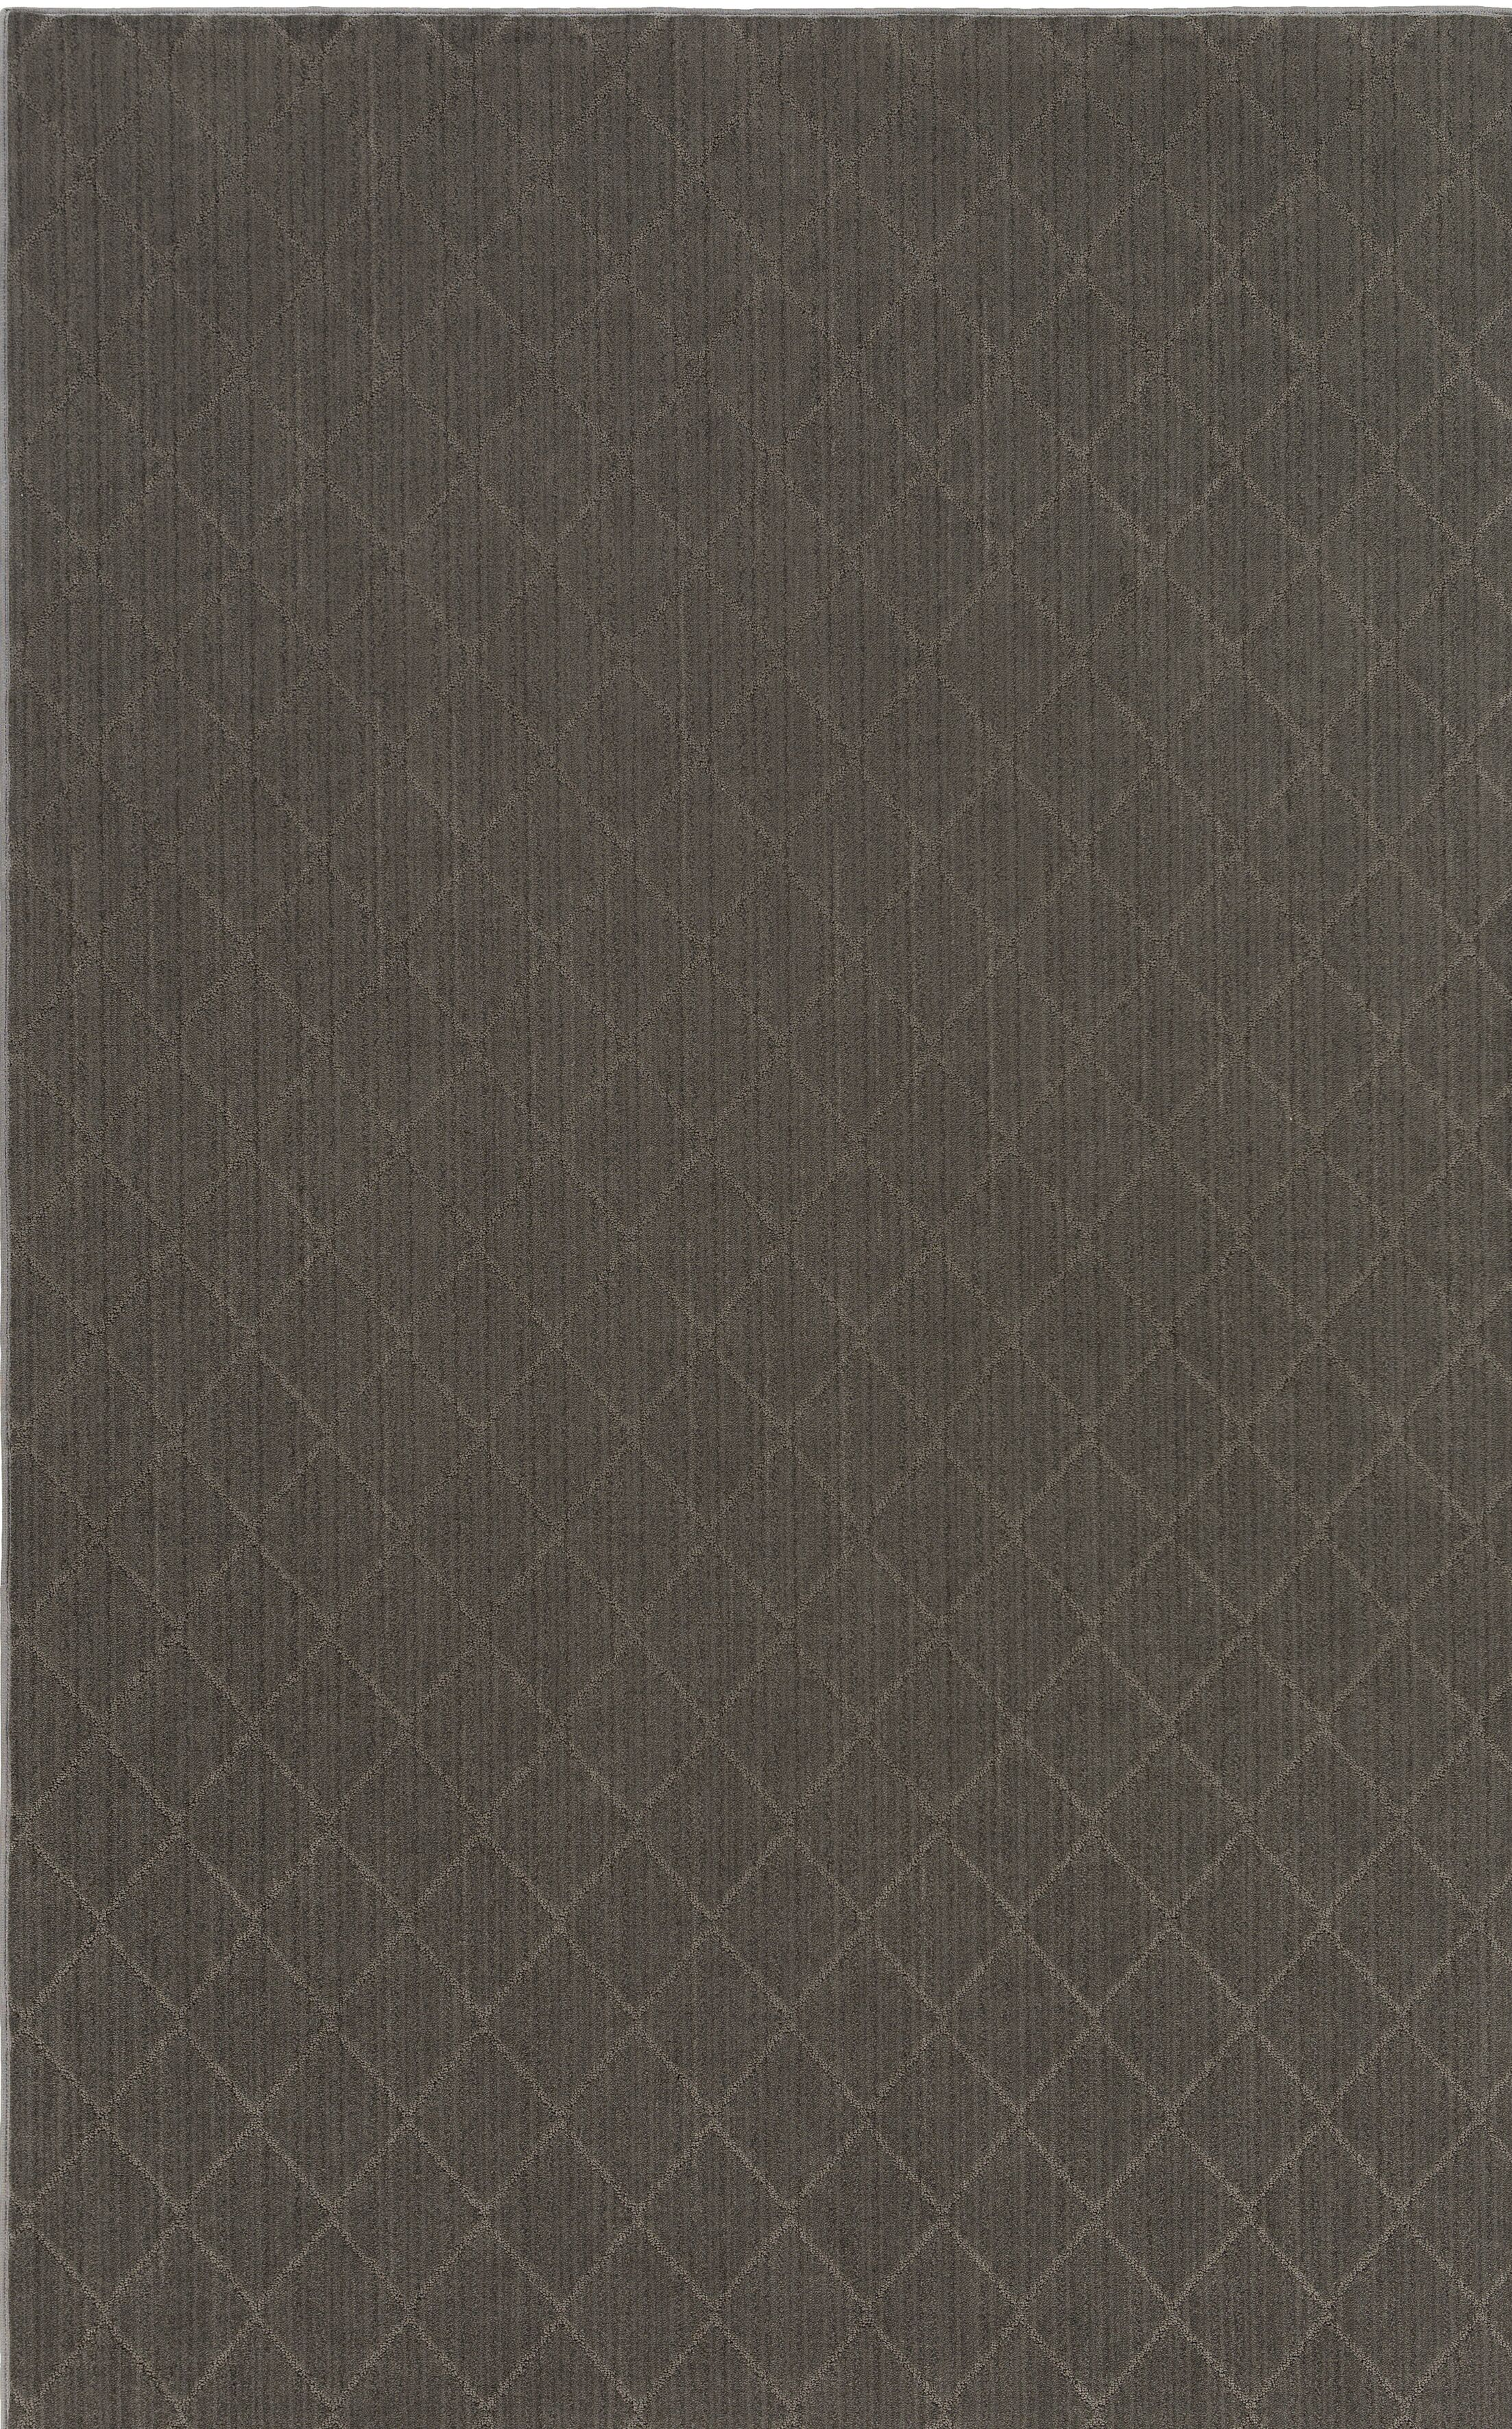 Huxley Gray Area Rug Rug Size: Rectangle 5' x 8'